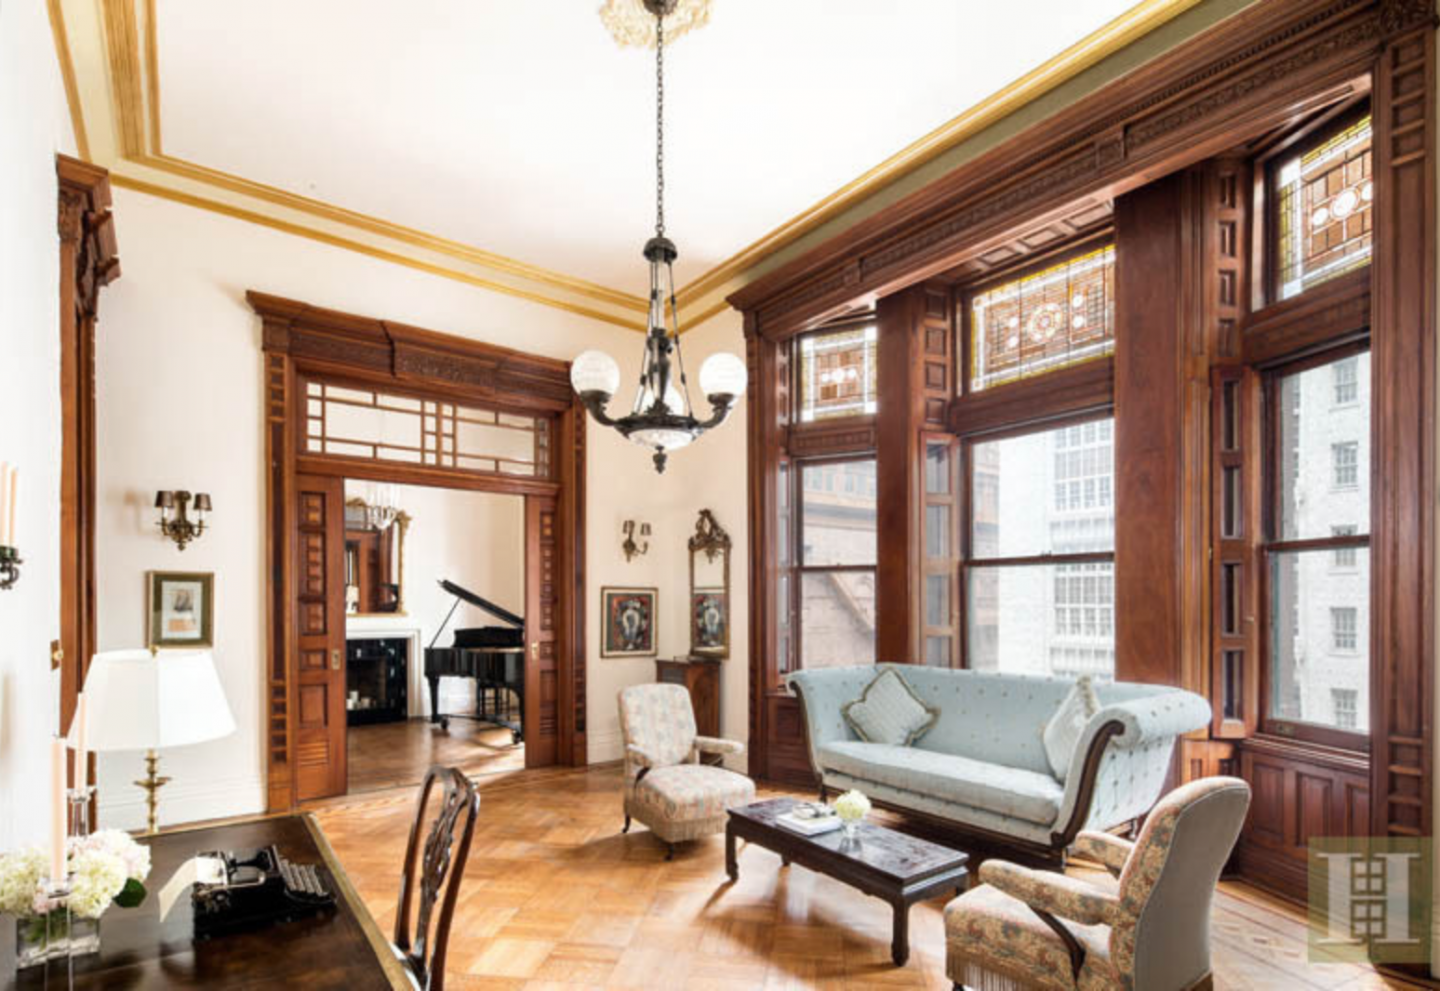 The turn-of-the-century home offers original features such as parquet floors and Bay windows with Tiffany glass transoms.